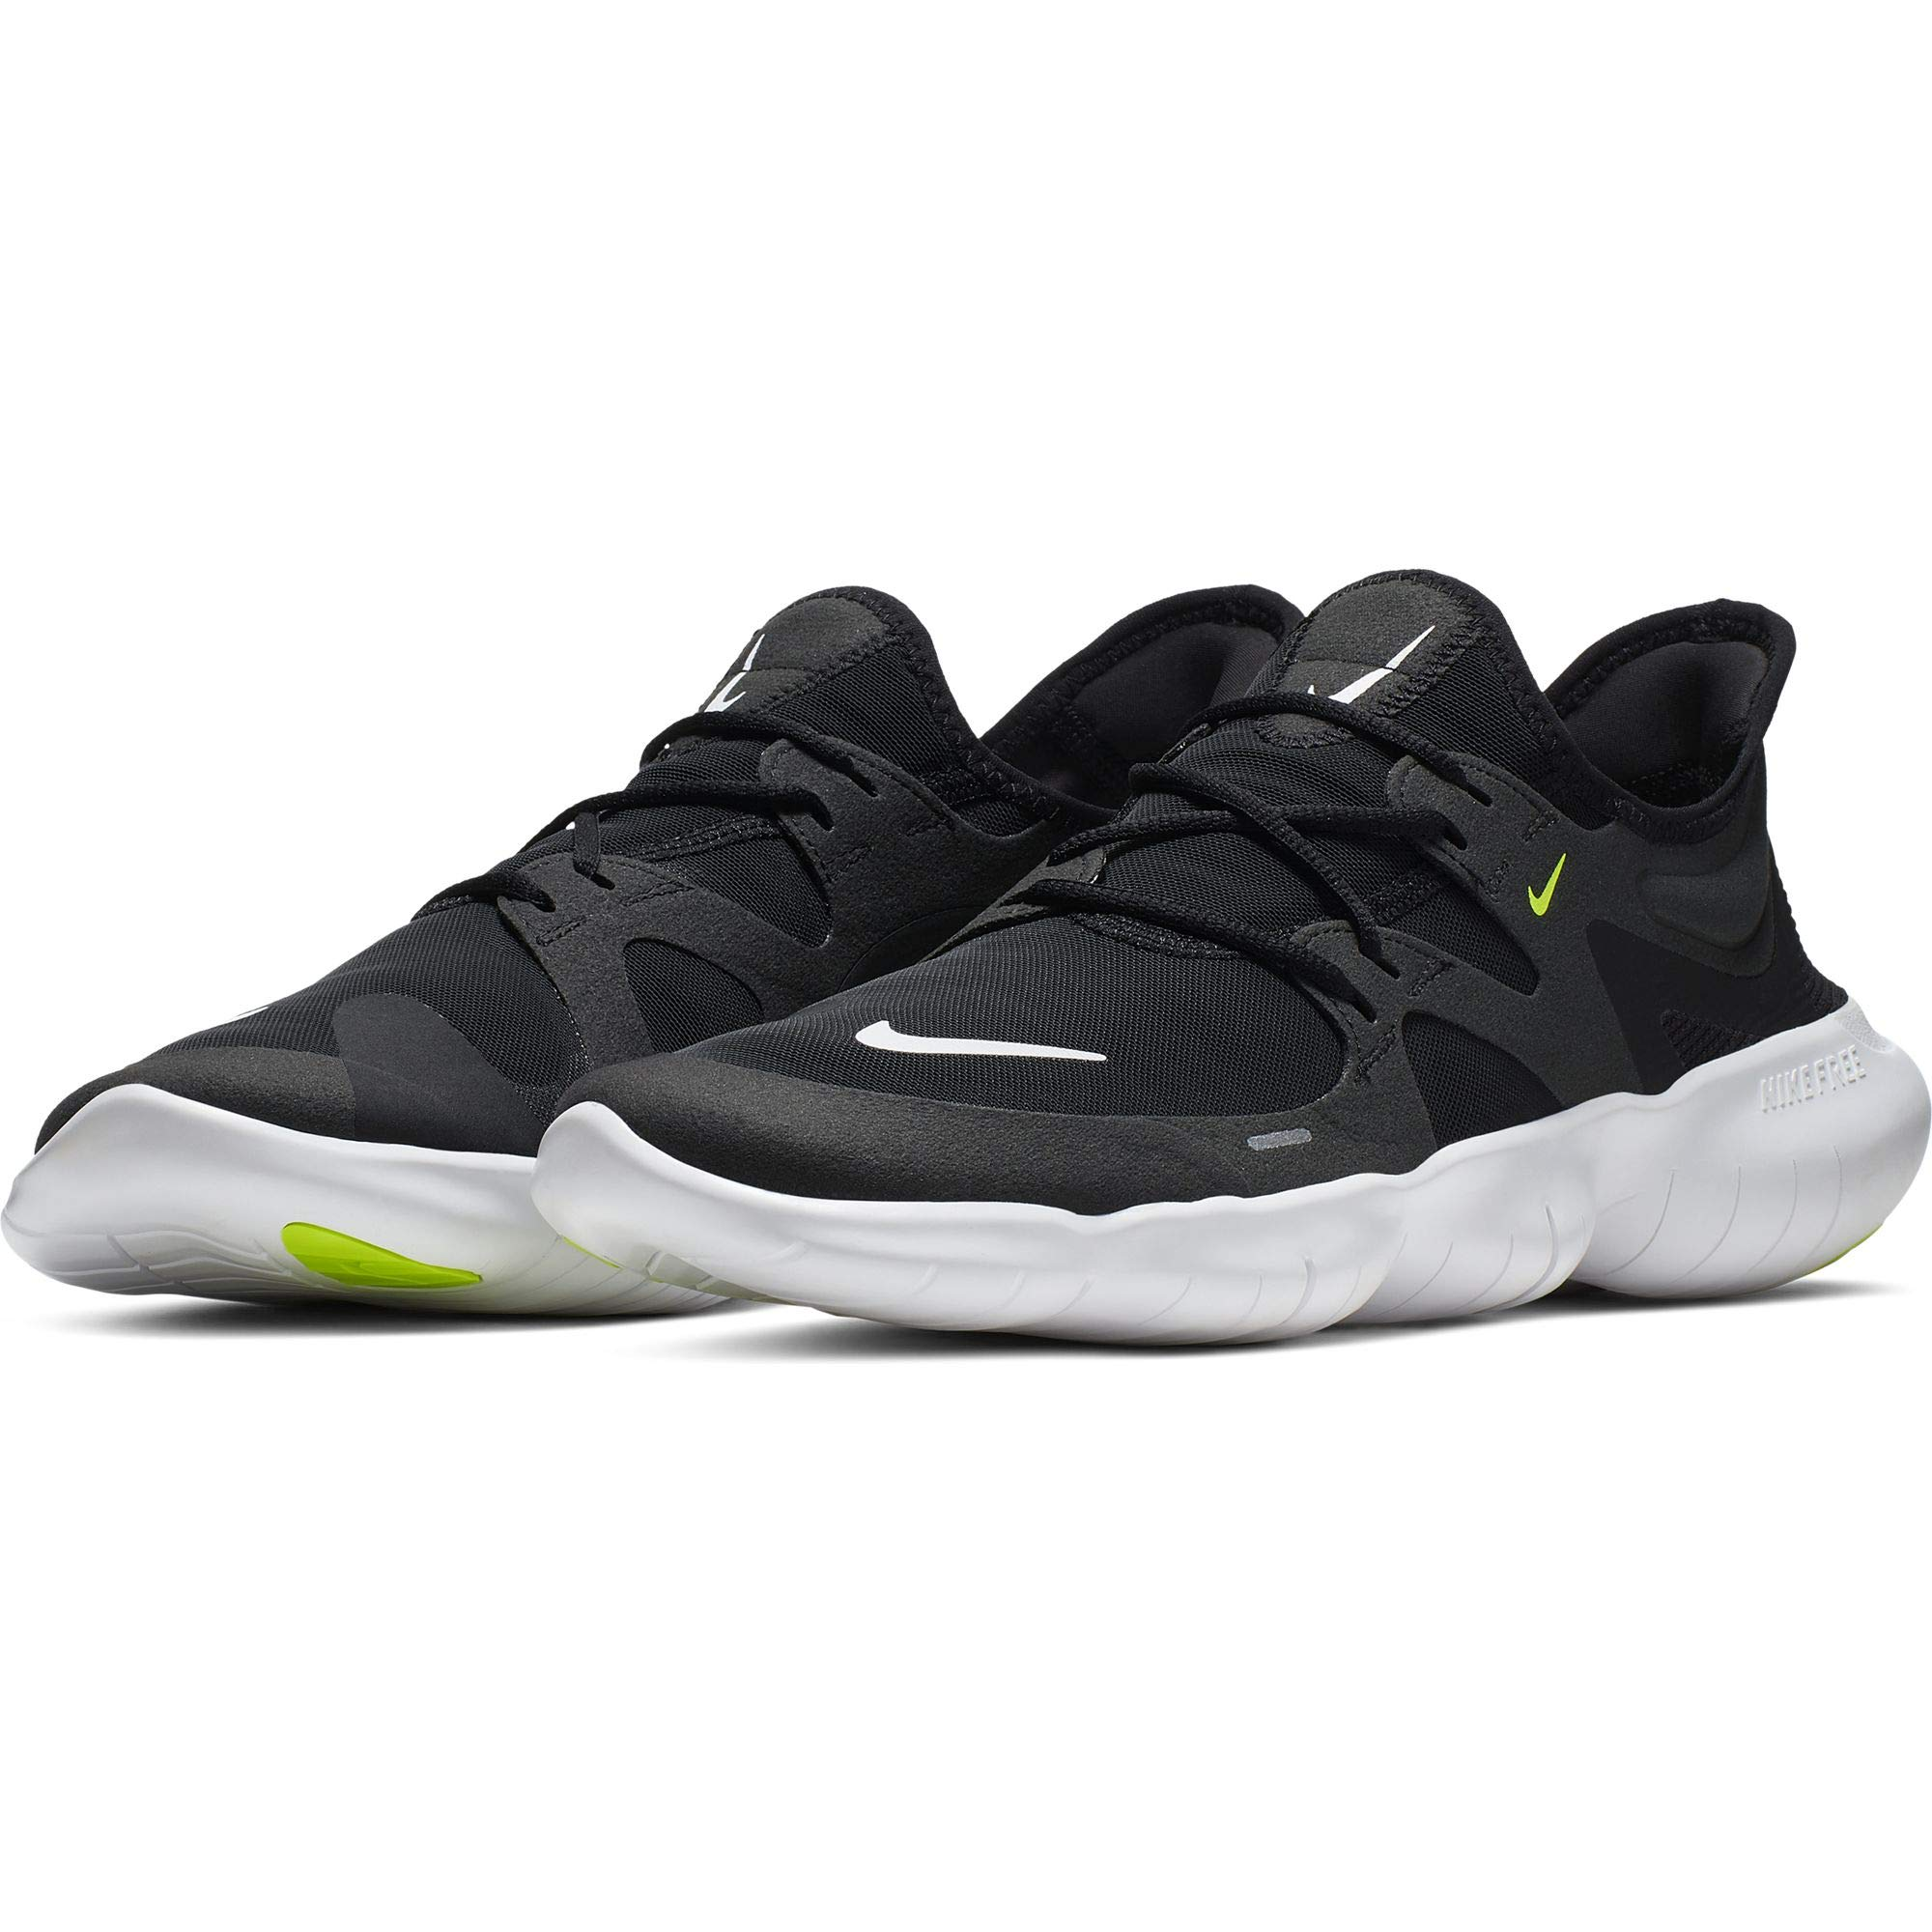 Nike Men's Free RN 5.0 Running Shoe Black/White/Anthracite/Volt Size 7.5 M US by Nike (Image #1)